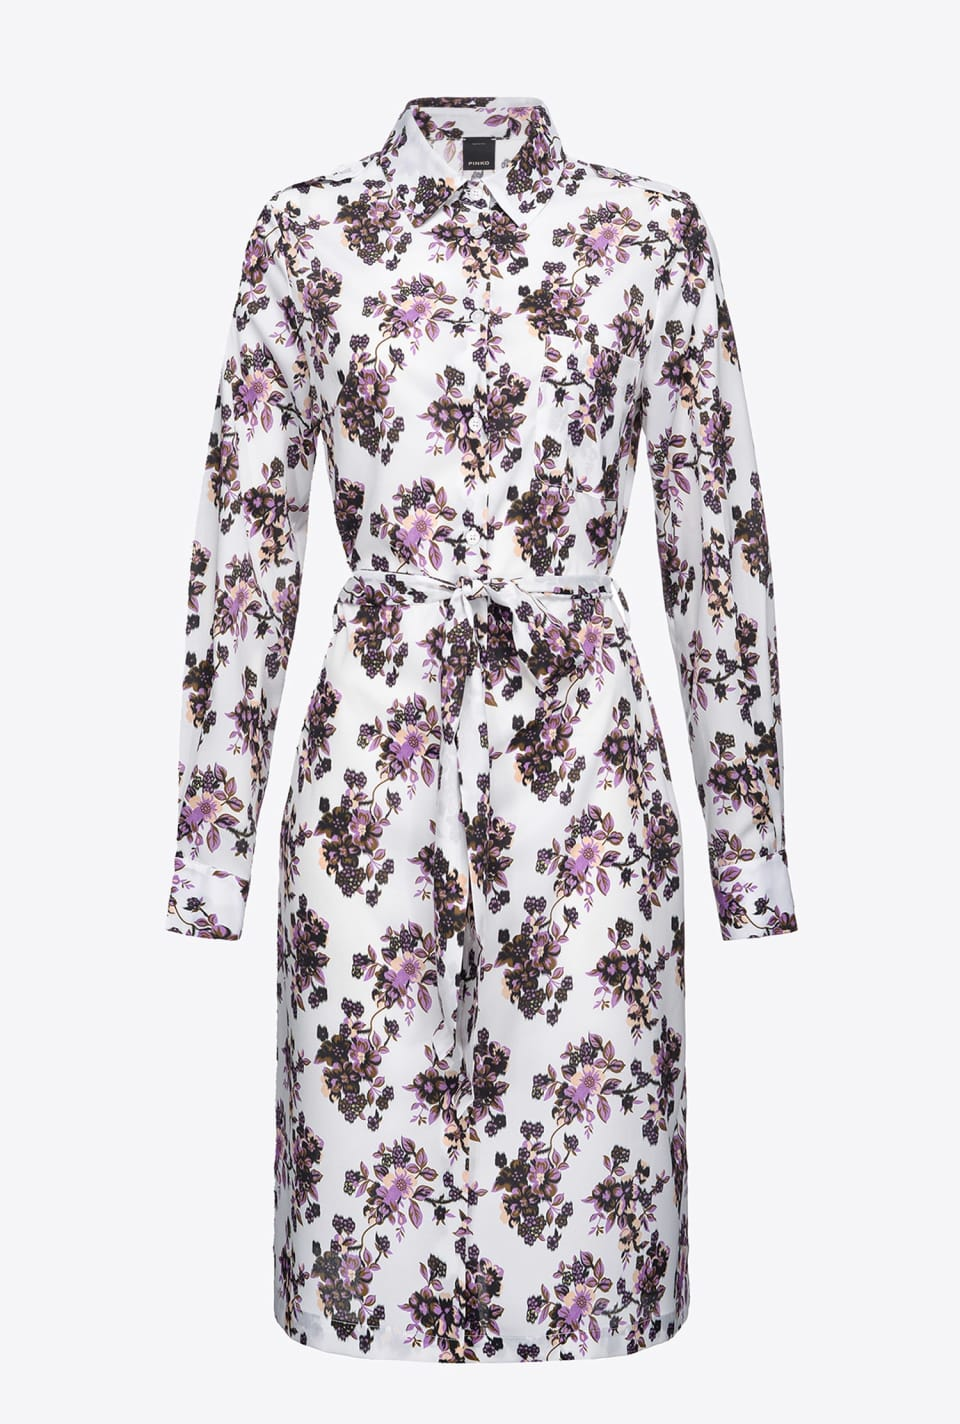 Floral shirtwaister dress - Pinko